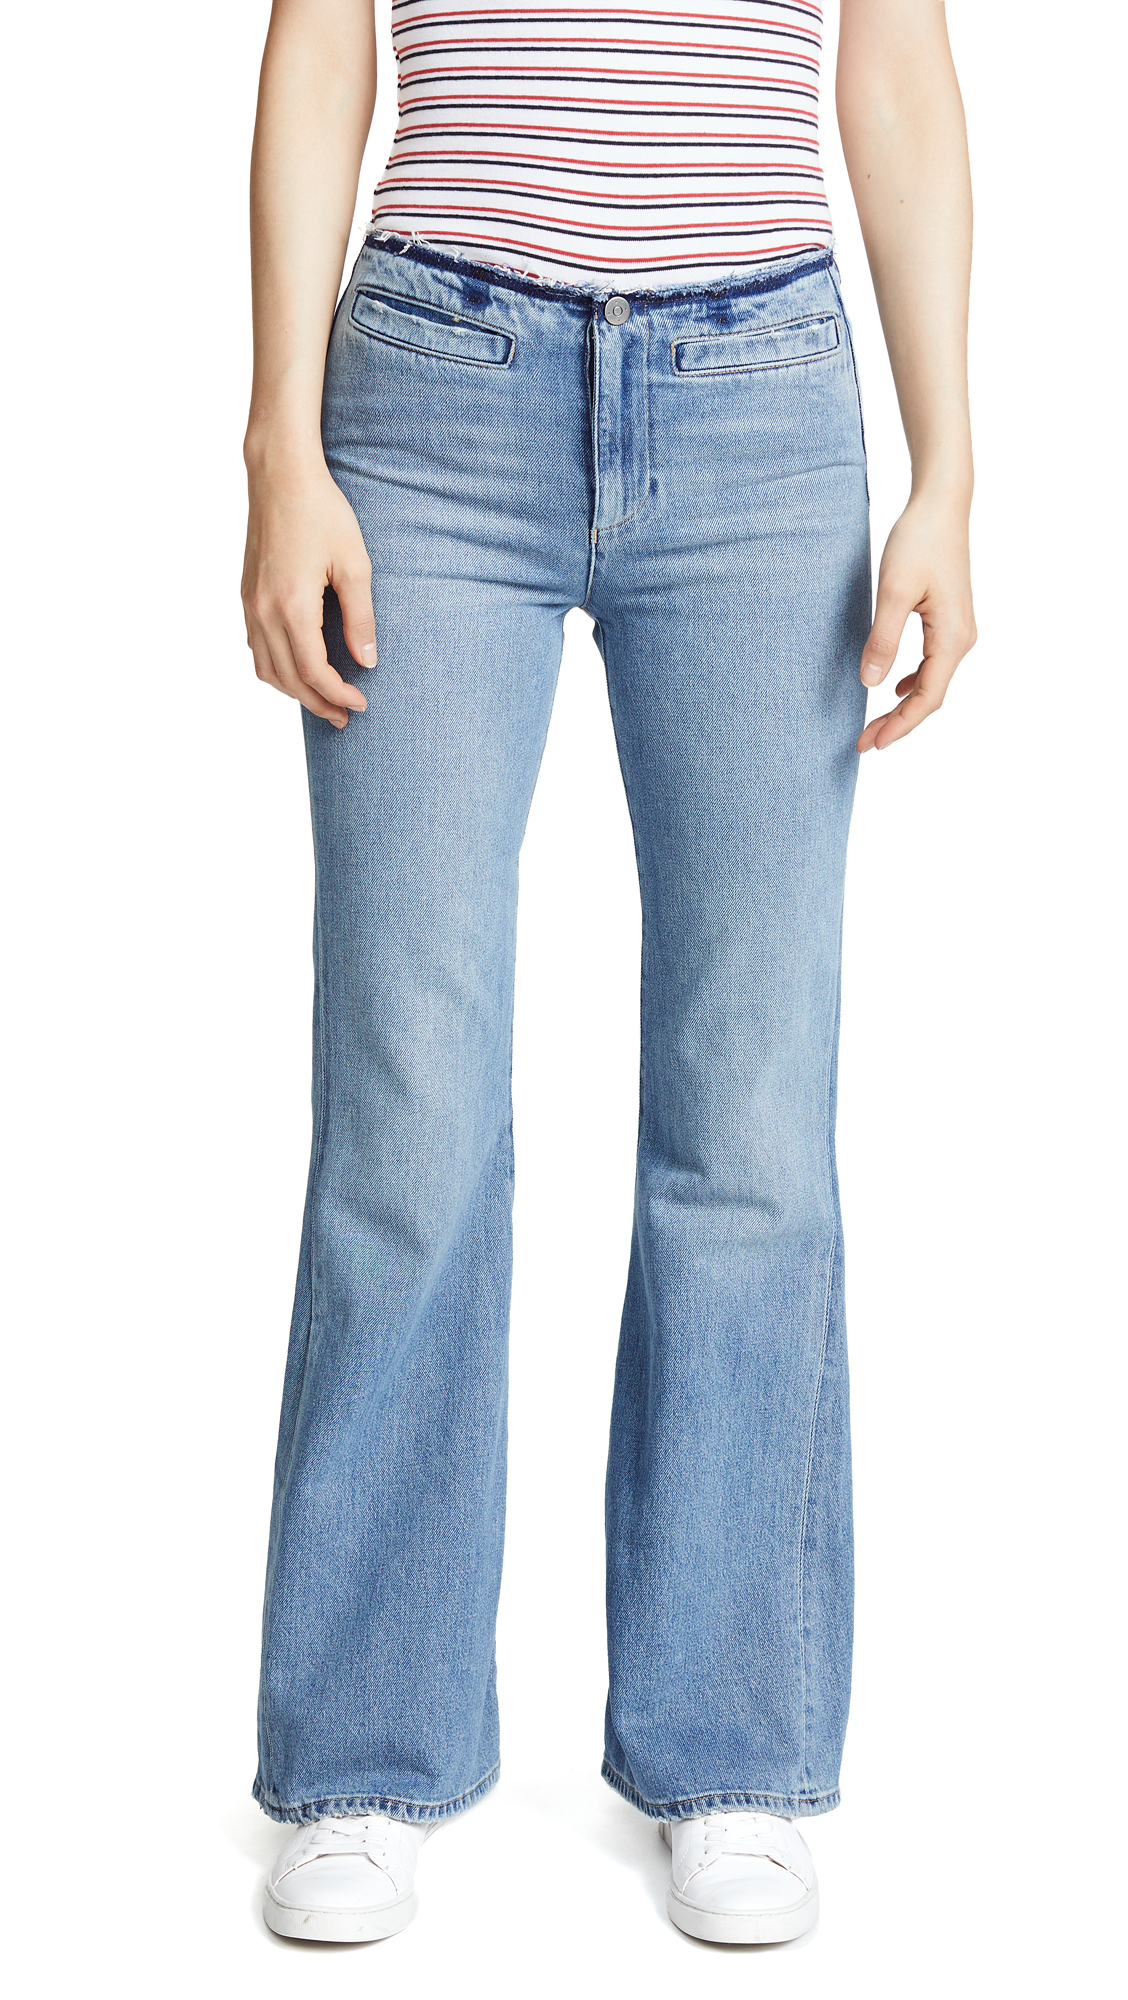 Marrakesh Flare Jeans